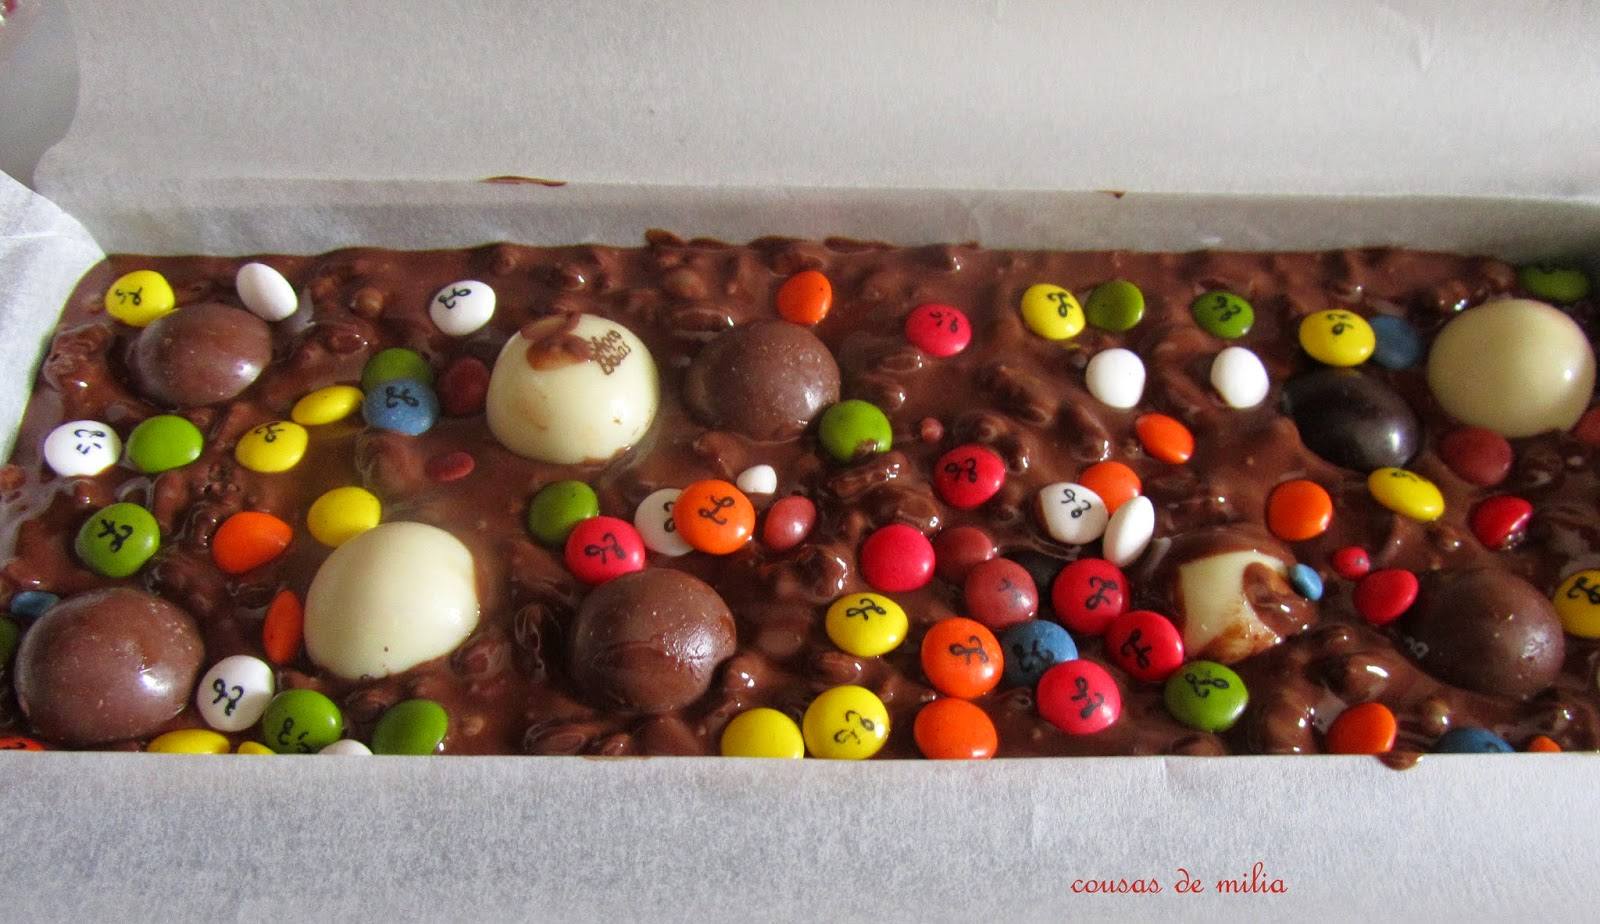 Turrón de chocolate con maltesers y lacasitos